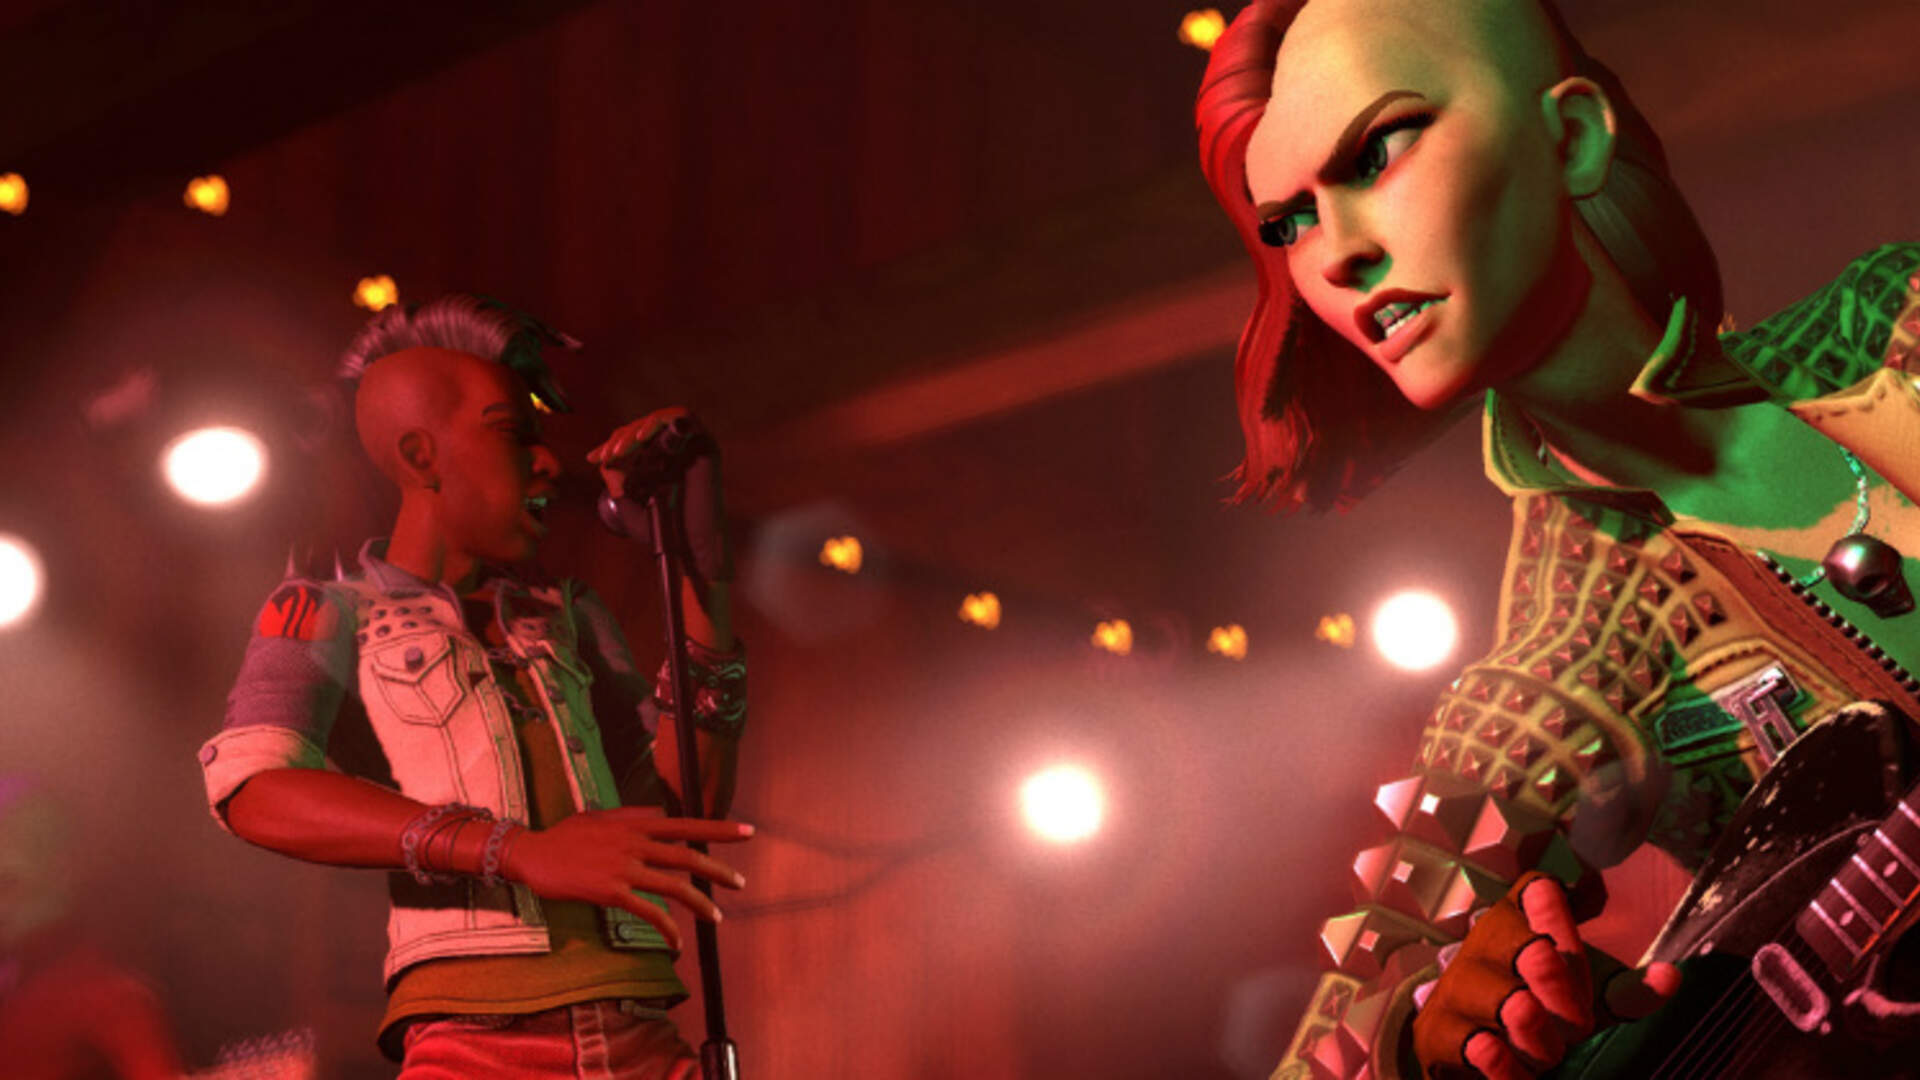 New Rock Band 4 Partnership Makes Things Even Harder for Mad Catz